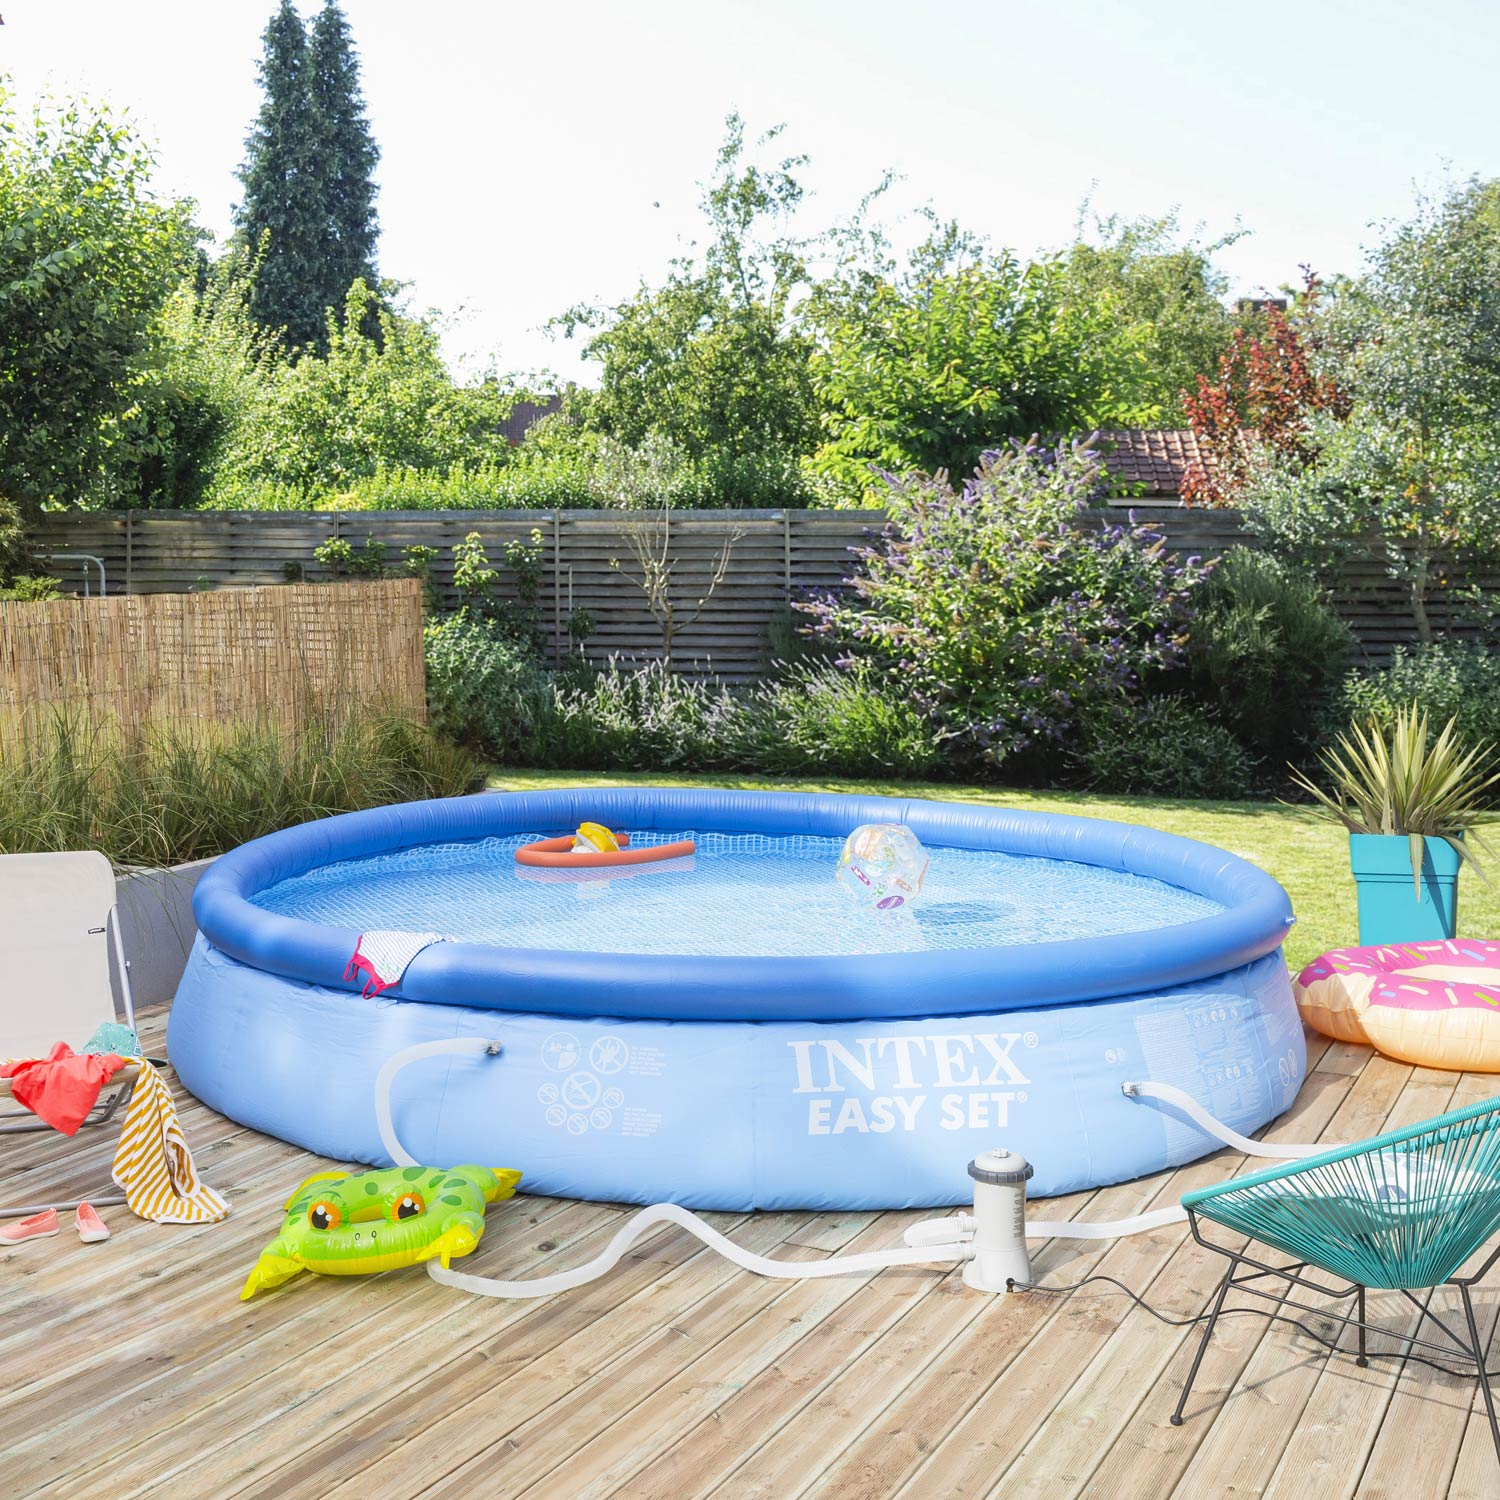 Piscine hors sol autoportante gonflable easy set intex for Idee piscine hors sol